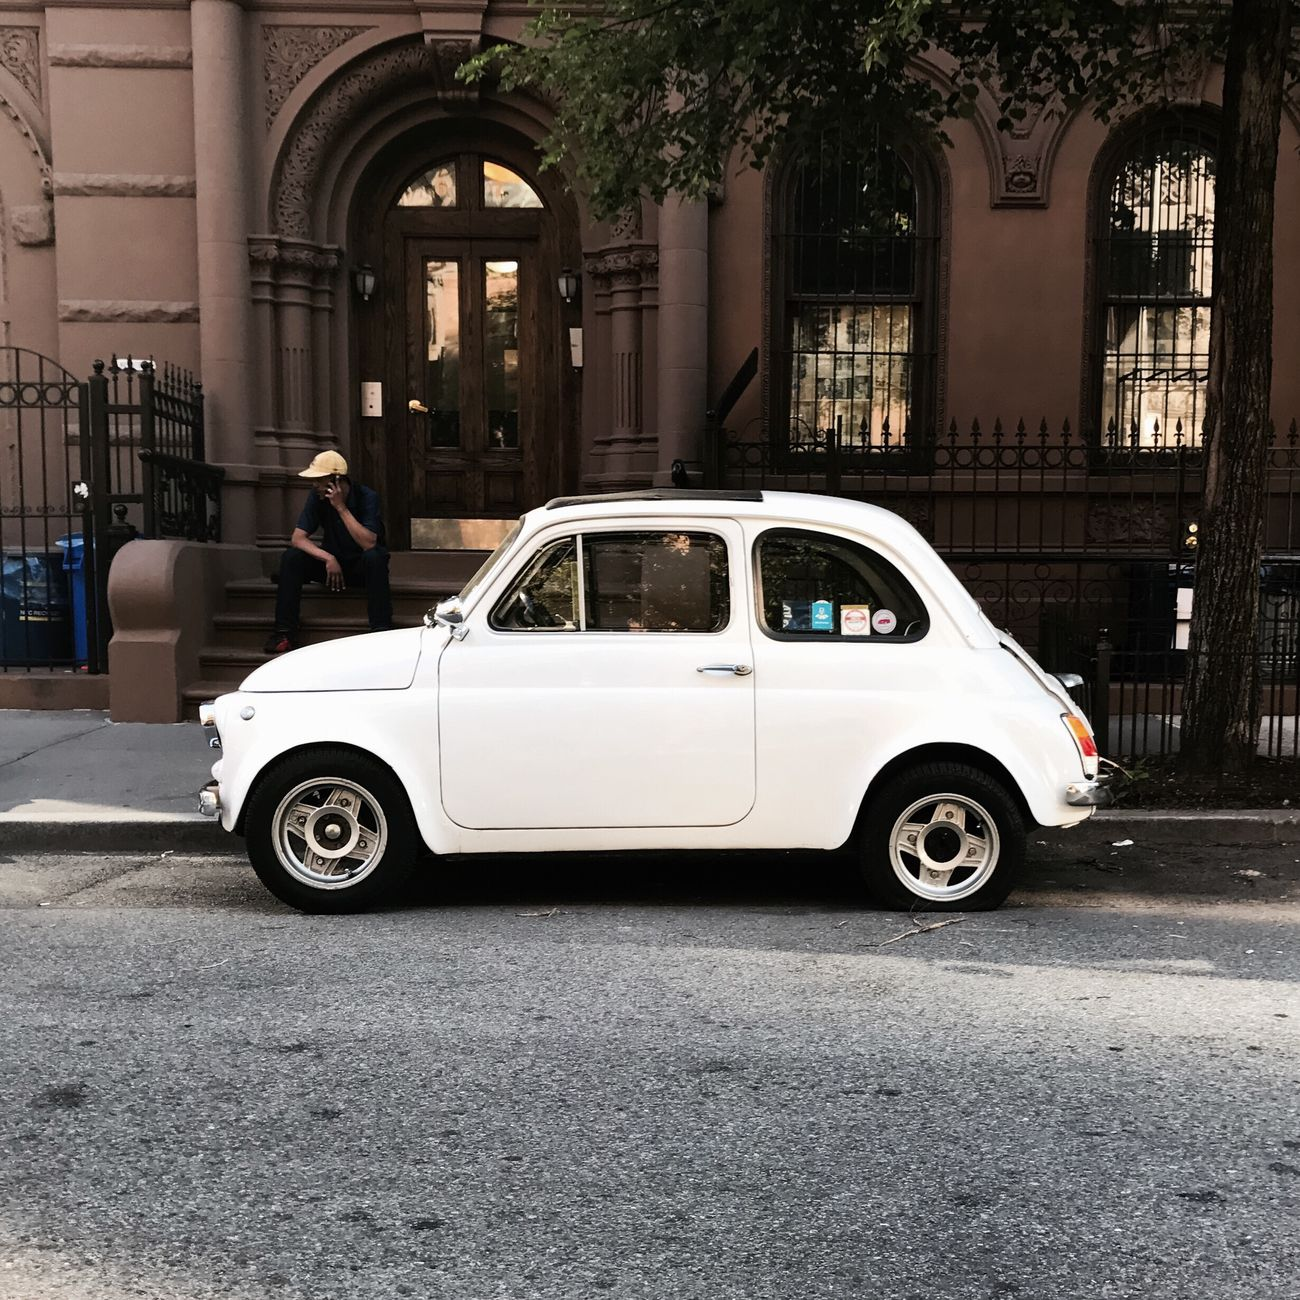 Flat Fiat | #streetphotography #people #spring2017 #manhattan #nyc #fiat #clasicauto #timyoungiphoneography